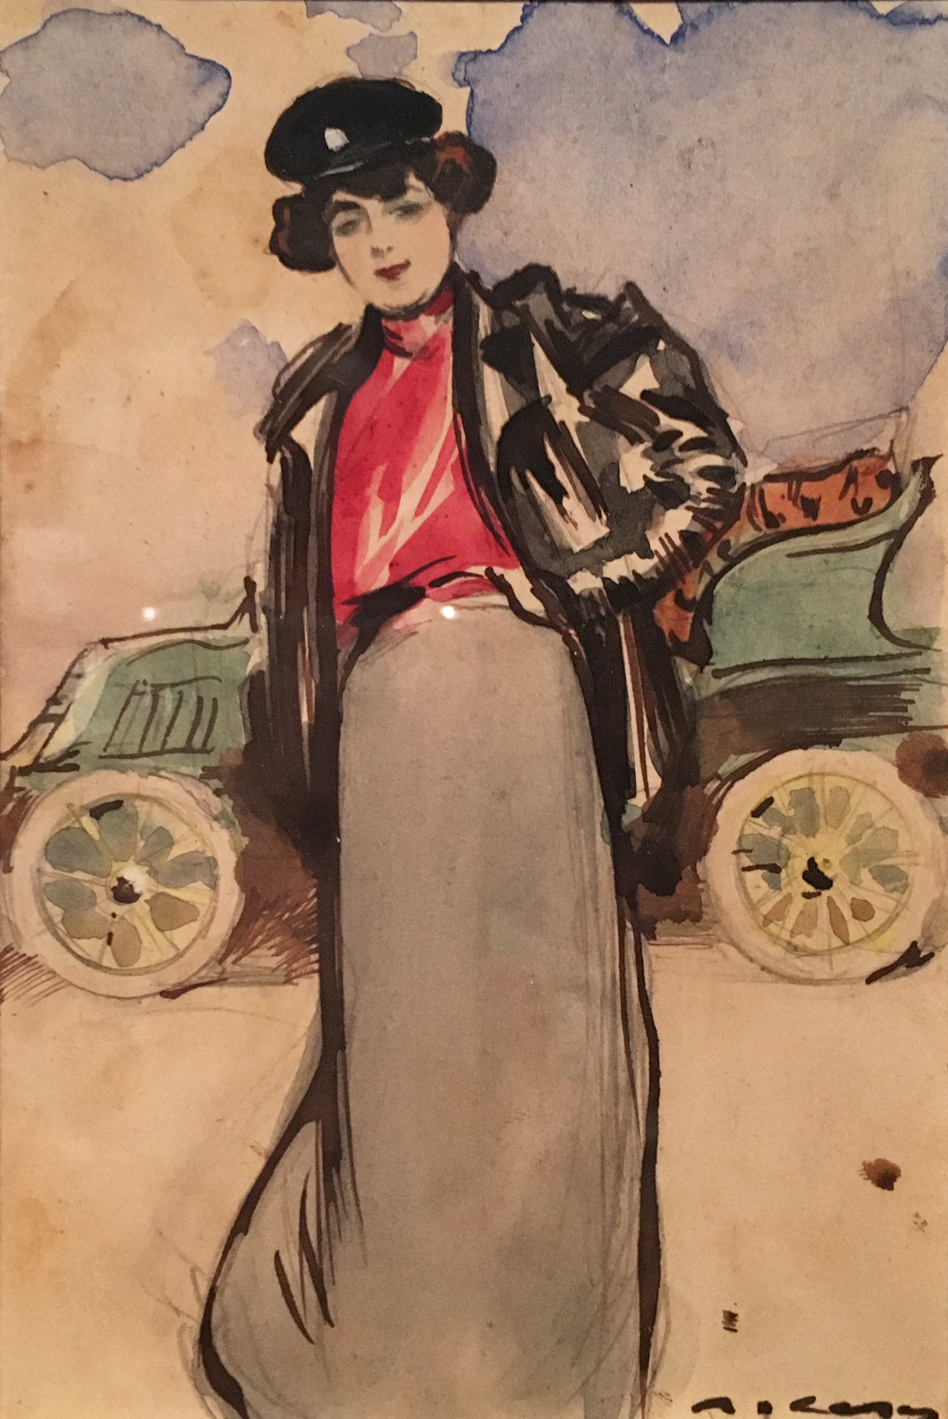 The Lady Driver, watercolour, ink and pencil on paper, c. 1900, Ramon Casas